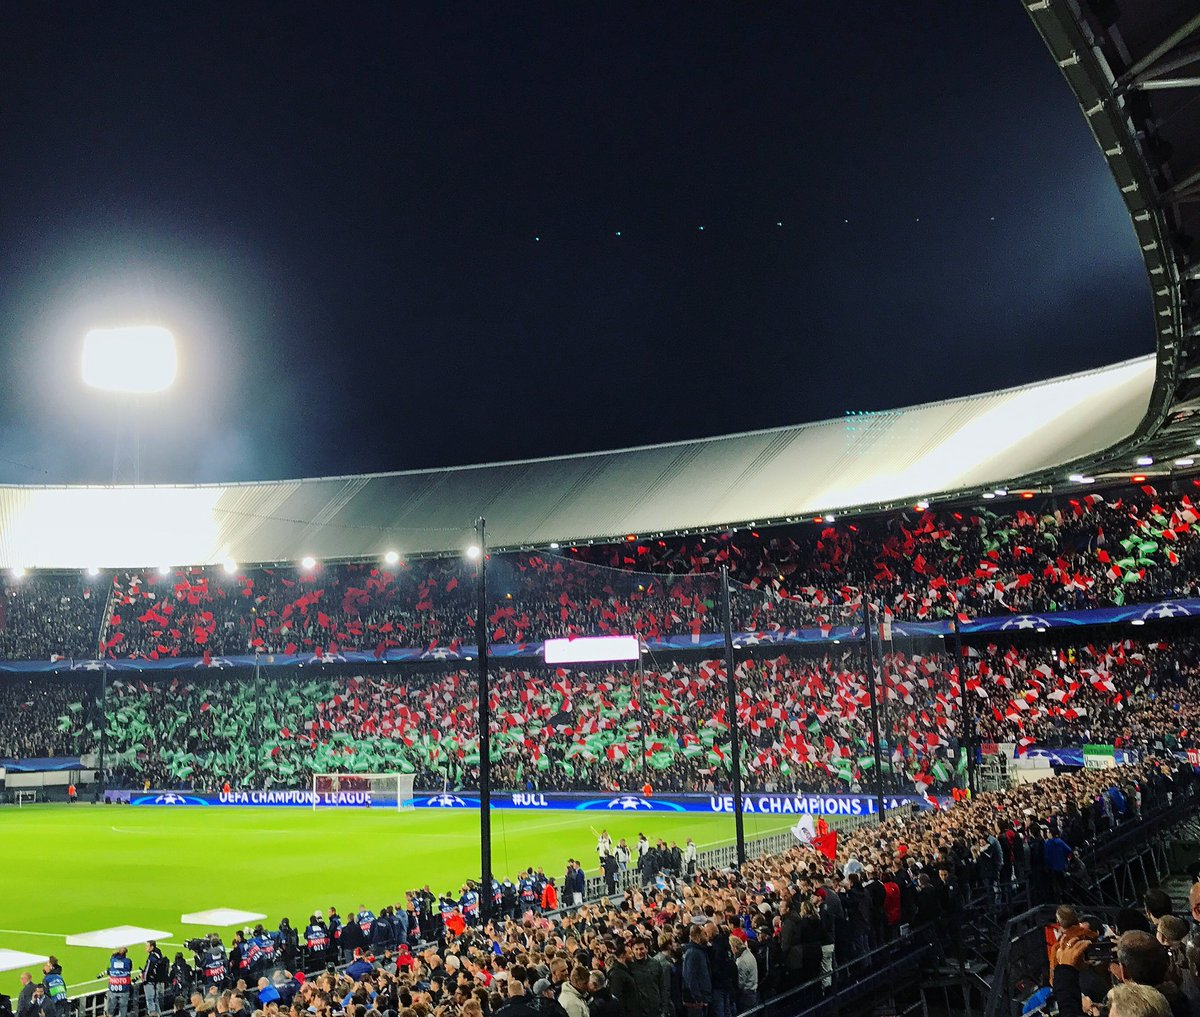 RT @Feyenoord: Thanks for the great support today... 🔴⚪️🇳🇬  #feymci #UCL https://t.co/ctuSM61j6D